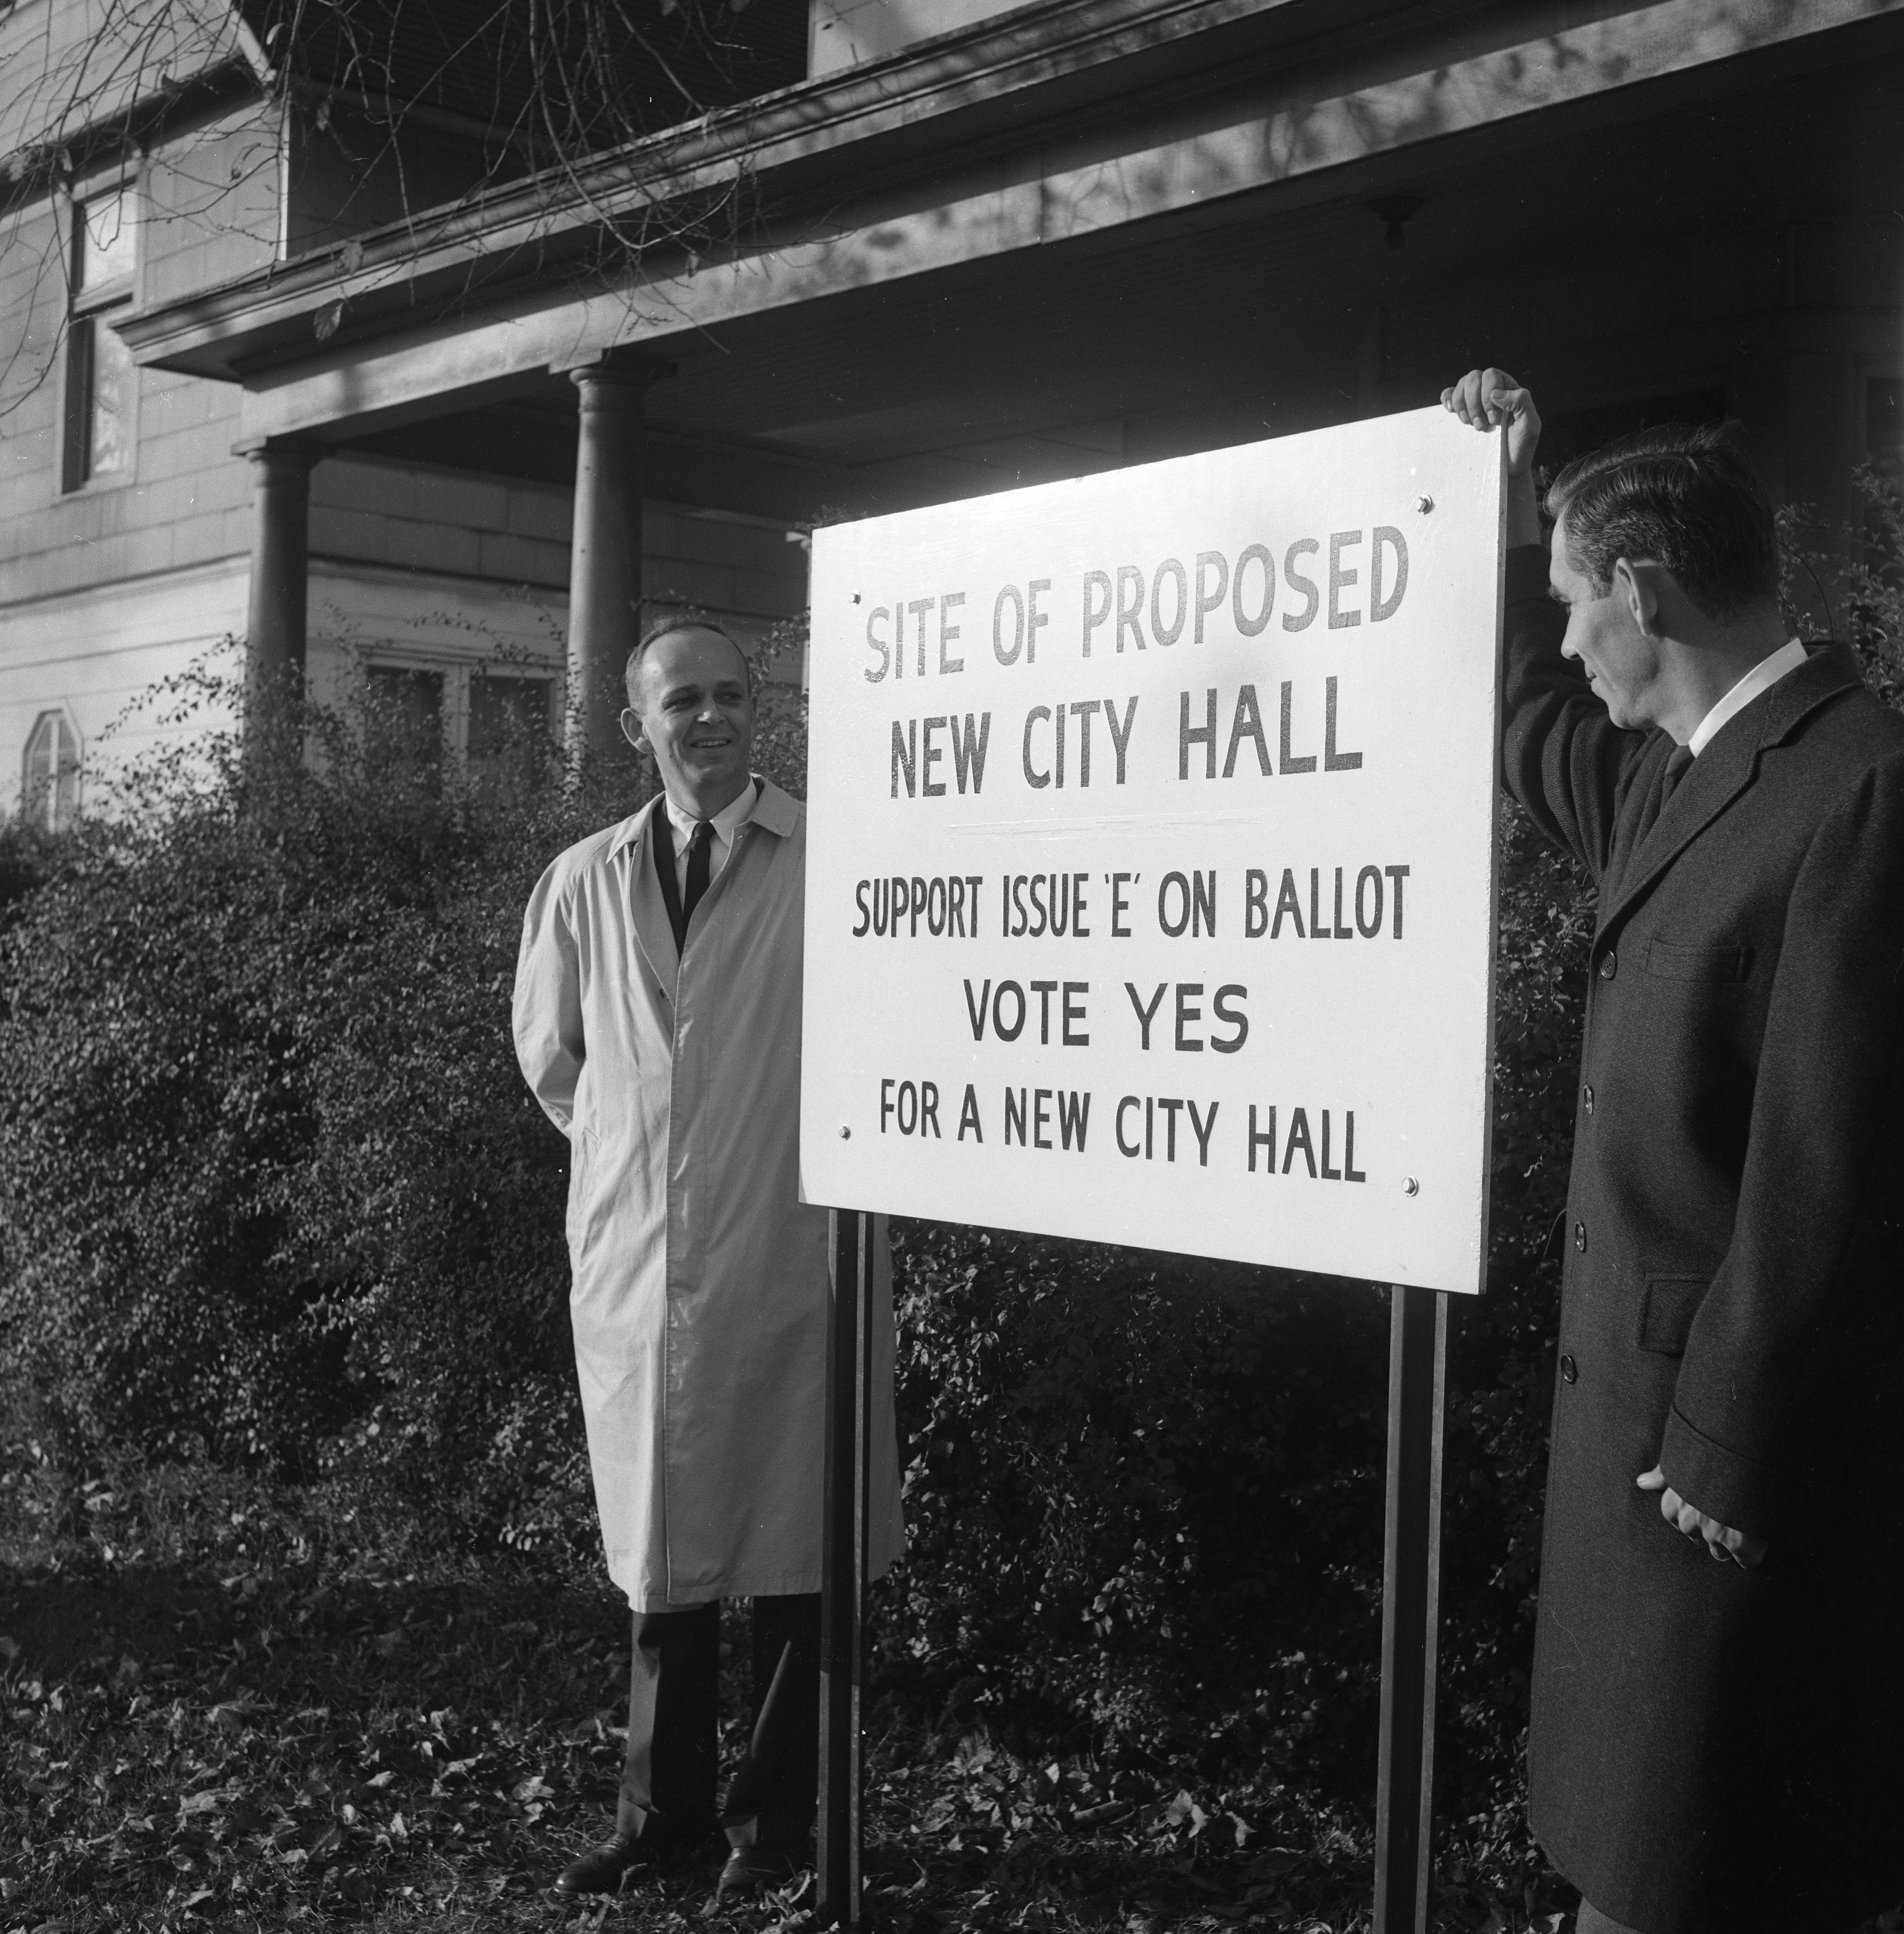 Ballot Proposal Sign Promotes New City Hall, October 1960 image